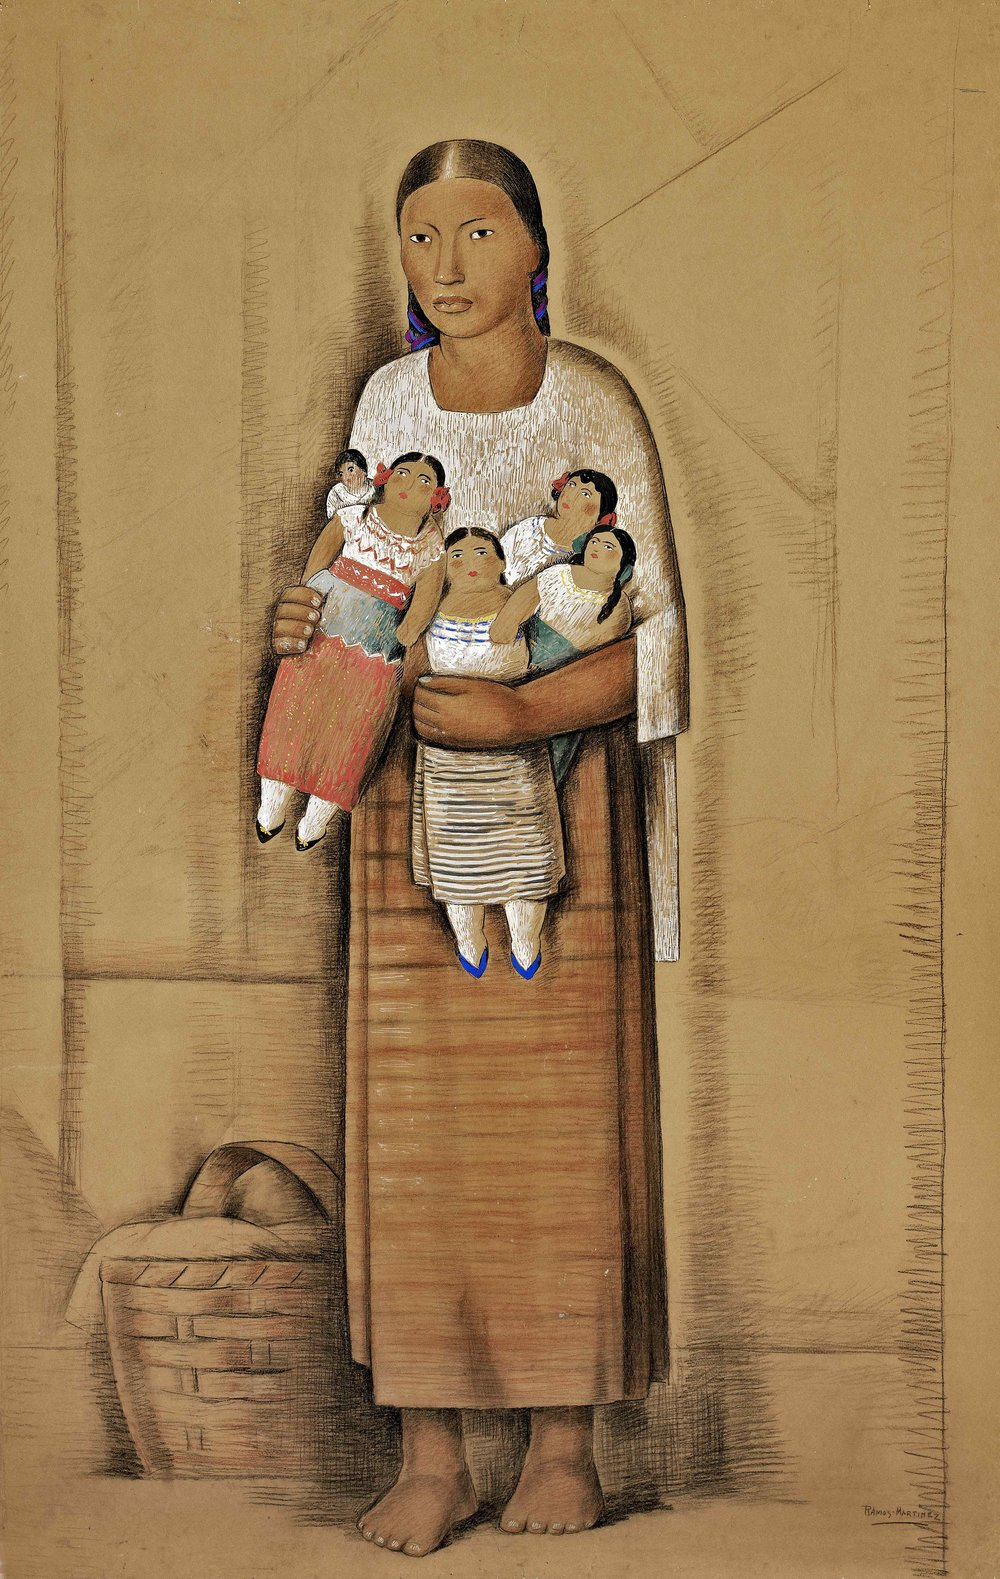 Mujer Joven con Muñecas / Young Woman with Dolls  ca. 1935 tempera and Conté crayon on paper mounted on board / temple y crayon Conté sobre papel sobre tabla 68 x 42.8 inches; 172.7 x 108.6 centímetros Private collection